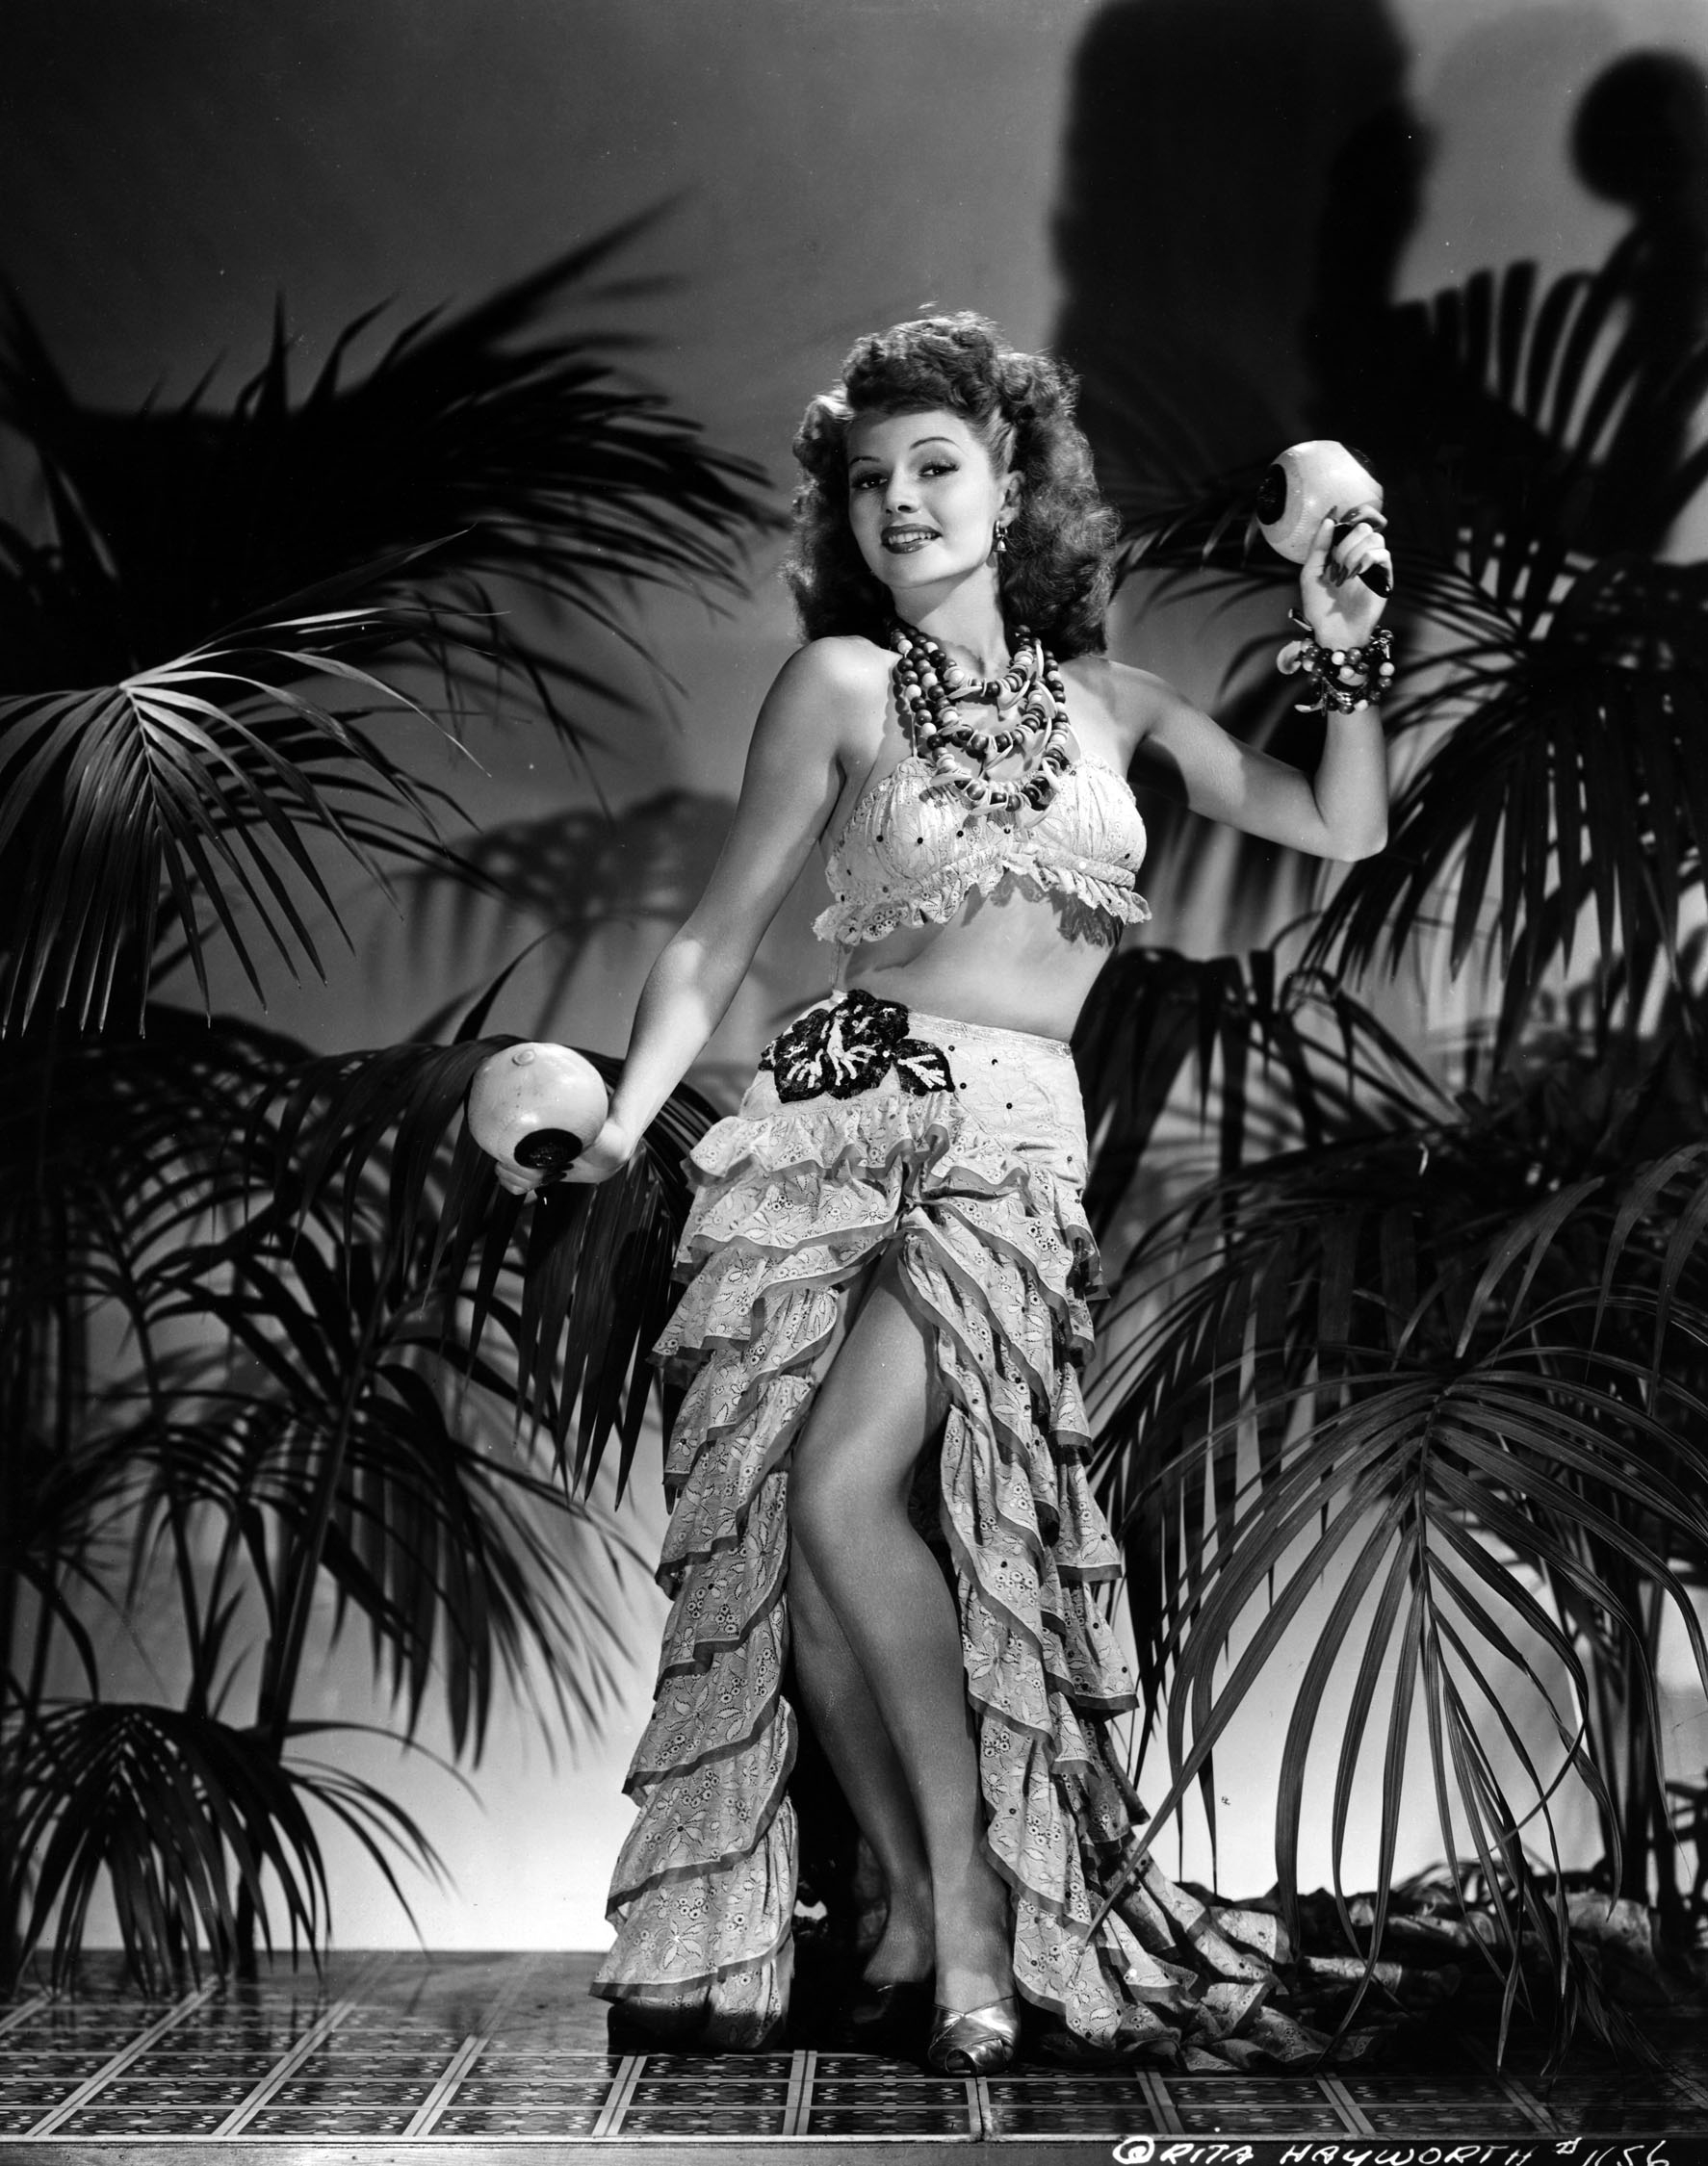 Columbia publicity still of Rita Hayworth dancing, circa 1941.